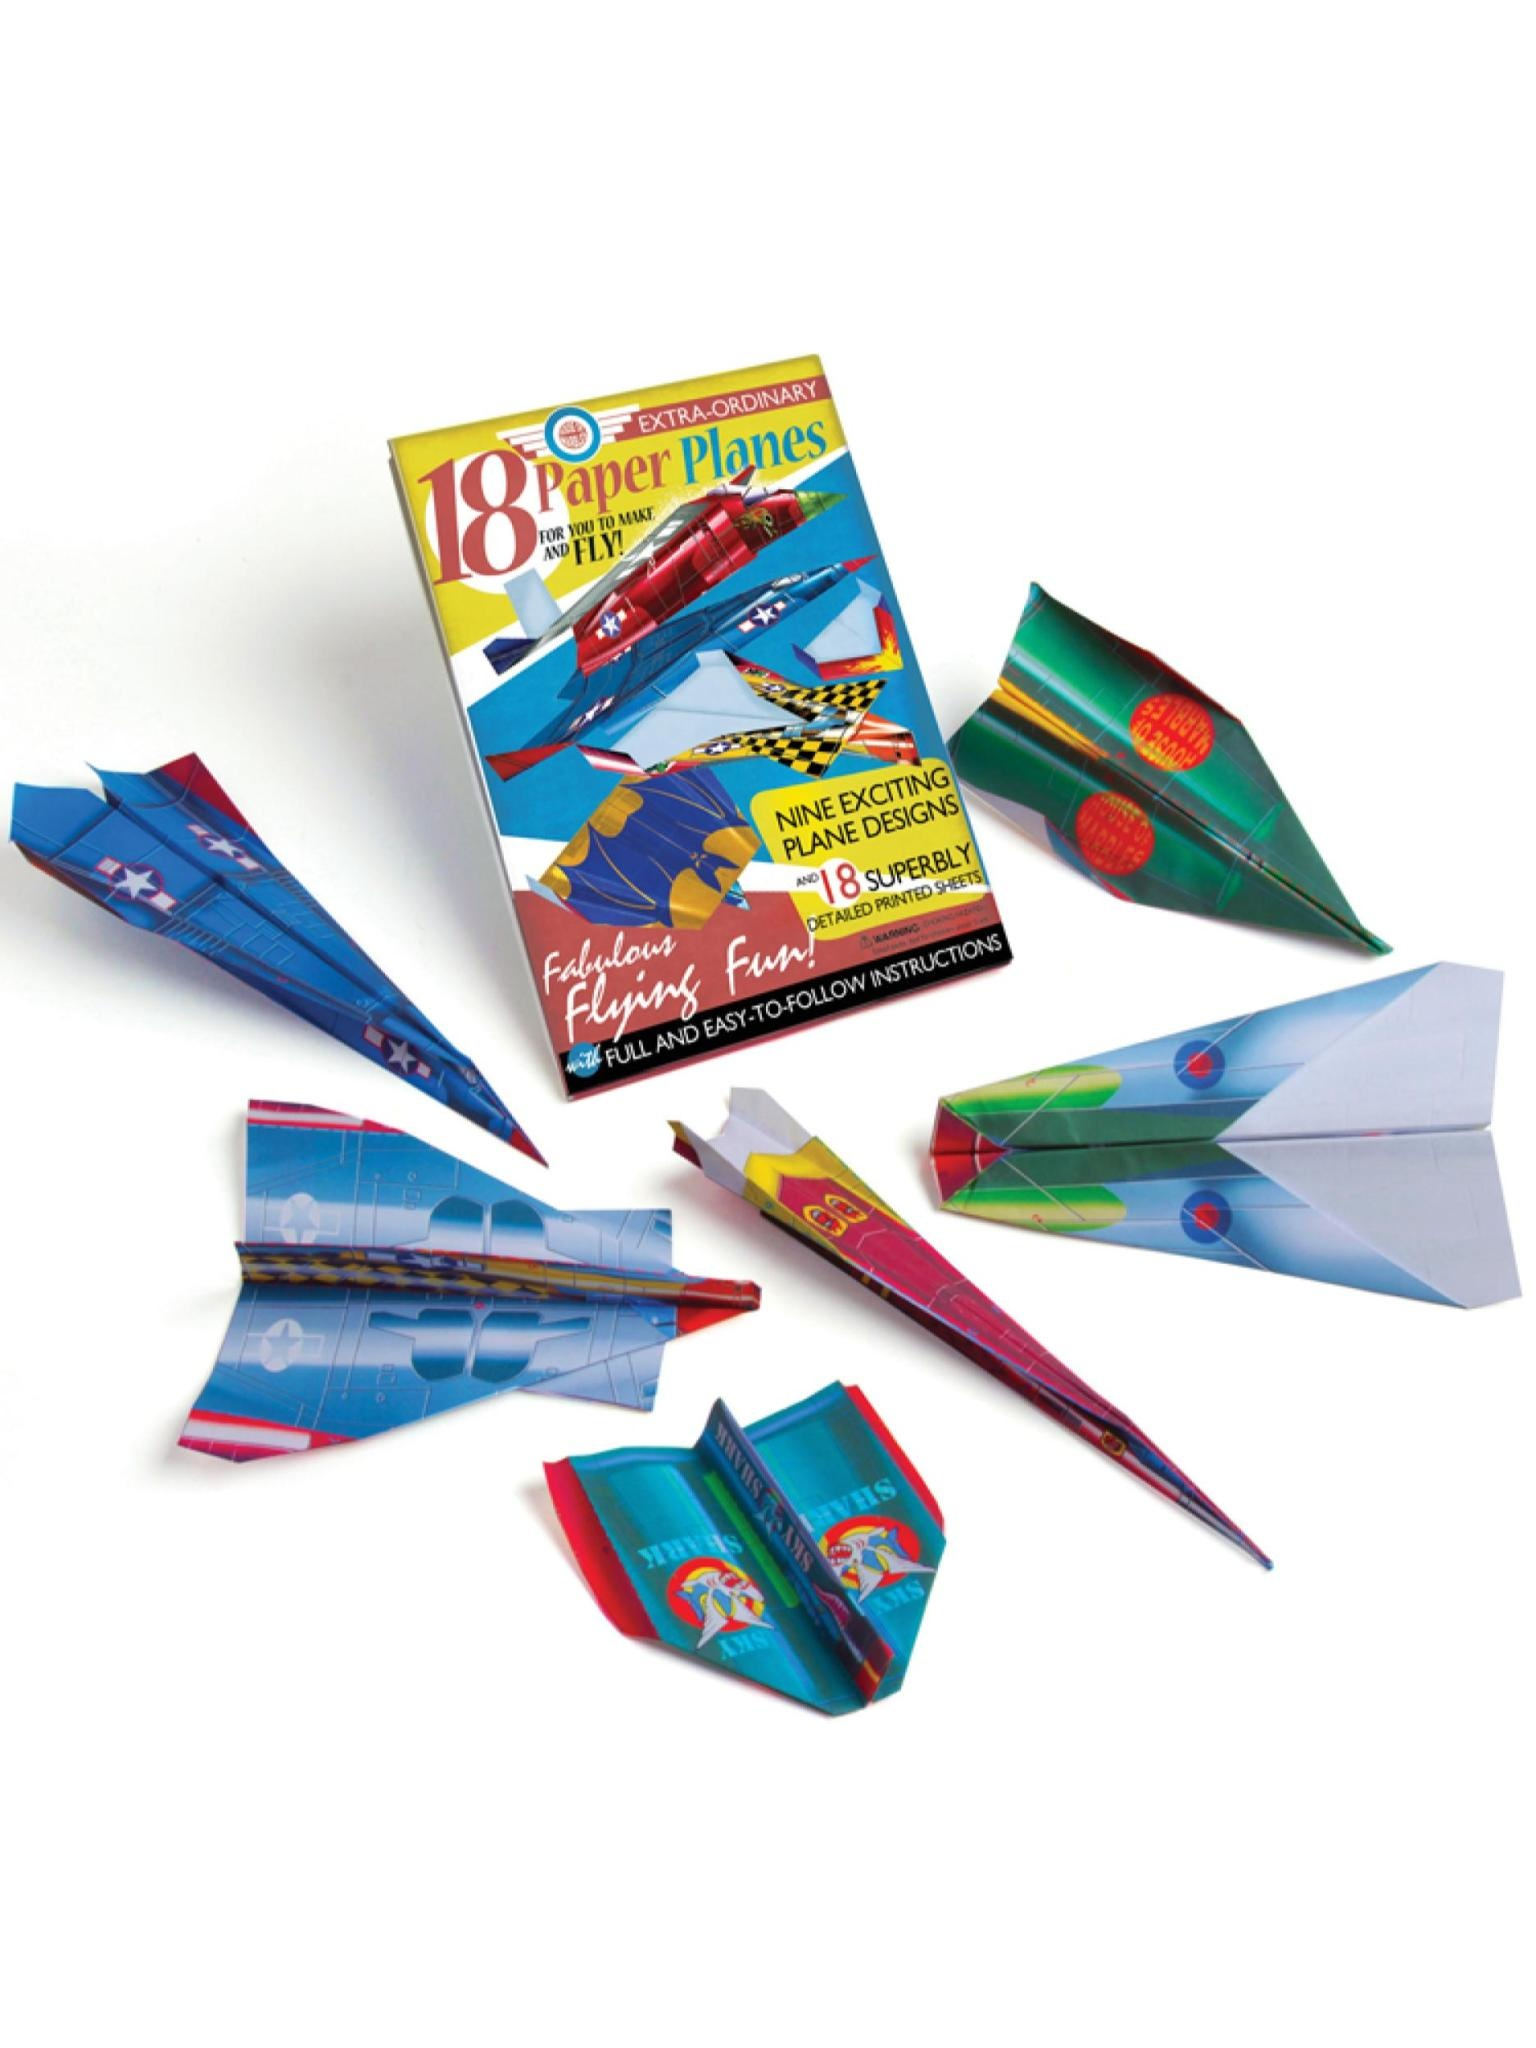 House of Marbles Paper Plane Kit